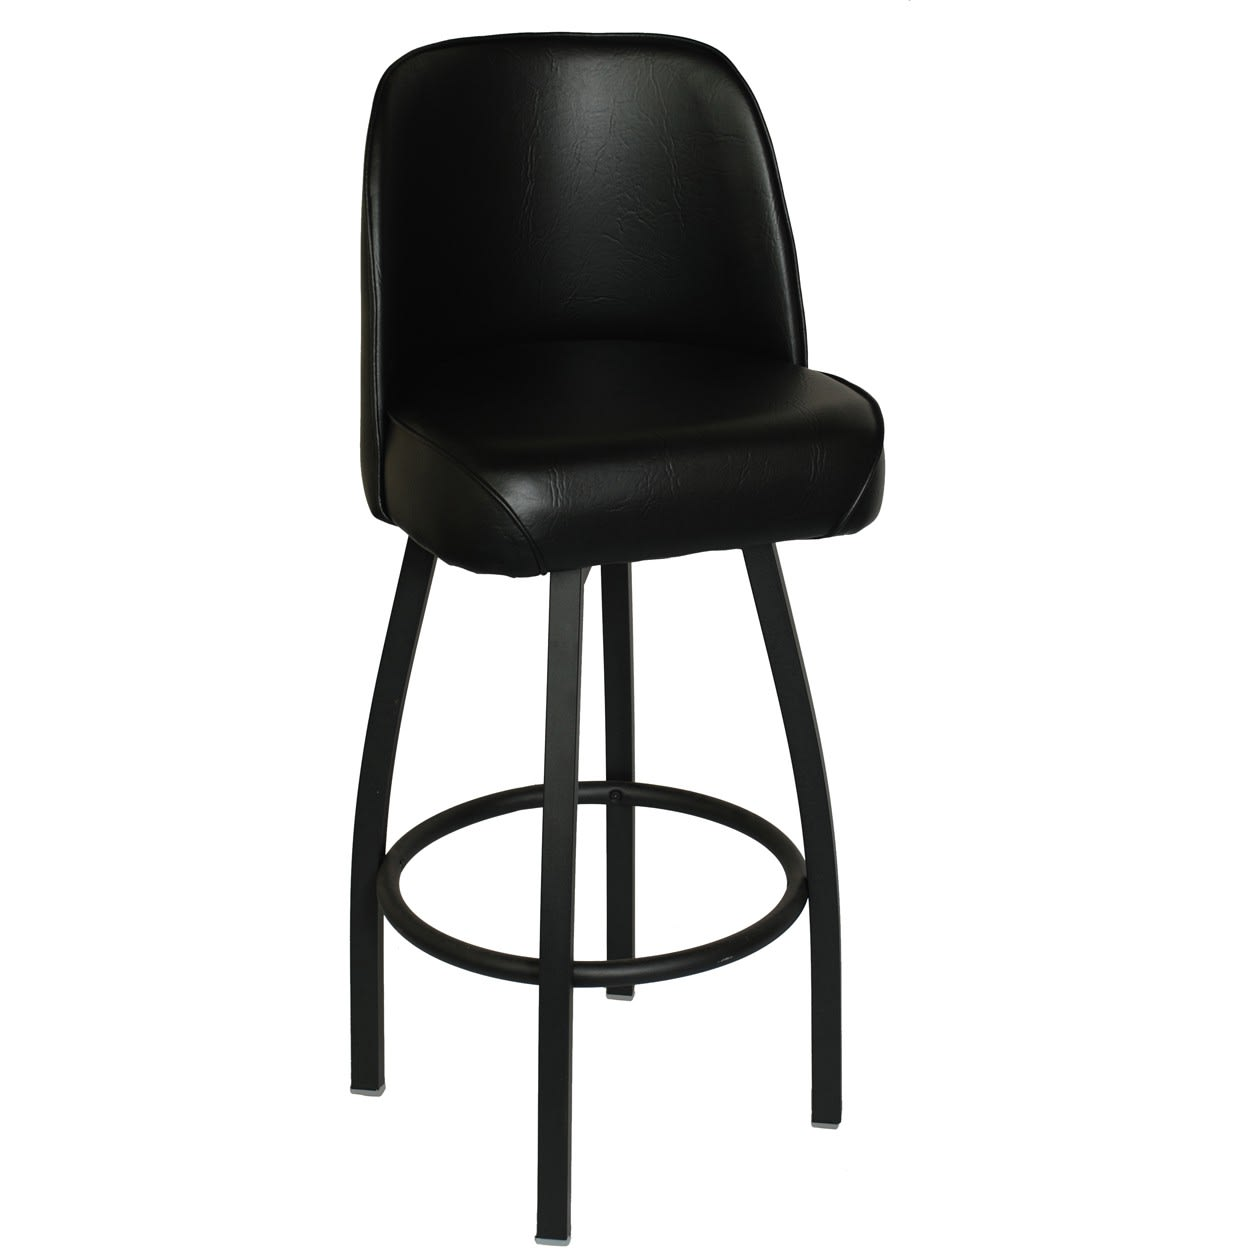 Swivel Bar Stool in Black Finish and Padded Bucket Seat